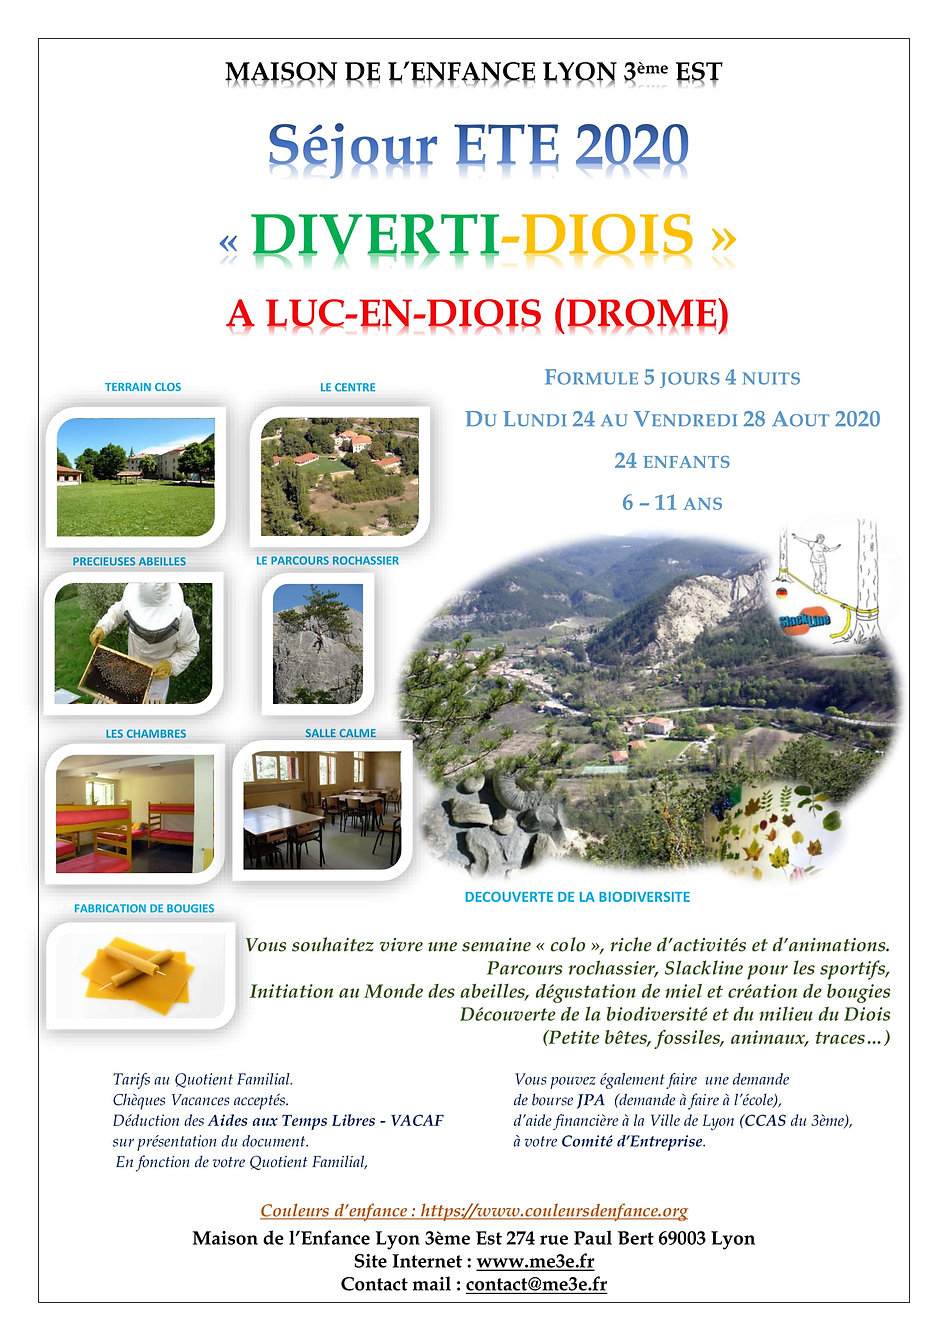 FLYERS DIVERTI-DIOIS 2 ETE 2020-1.jpg